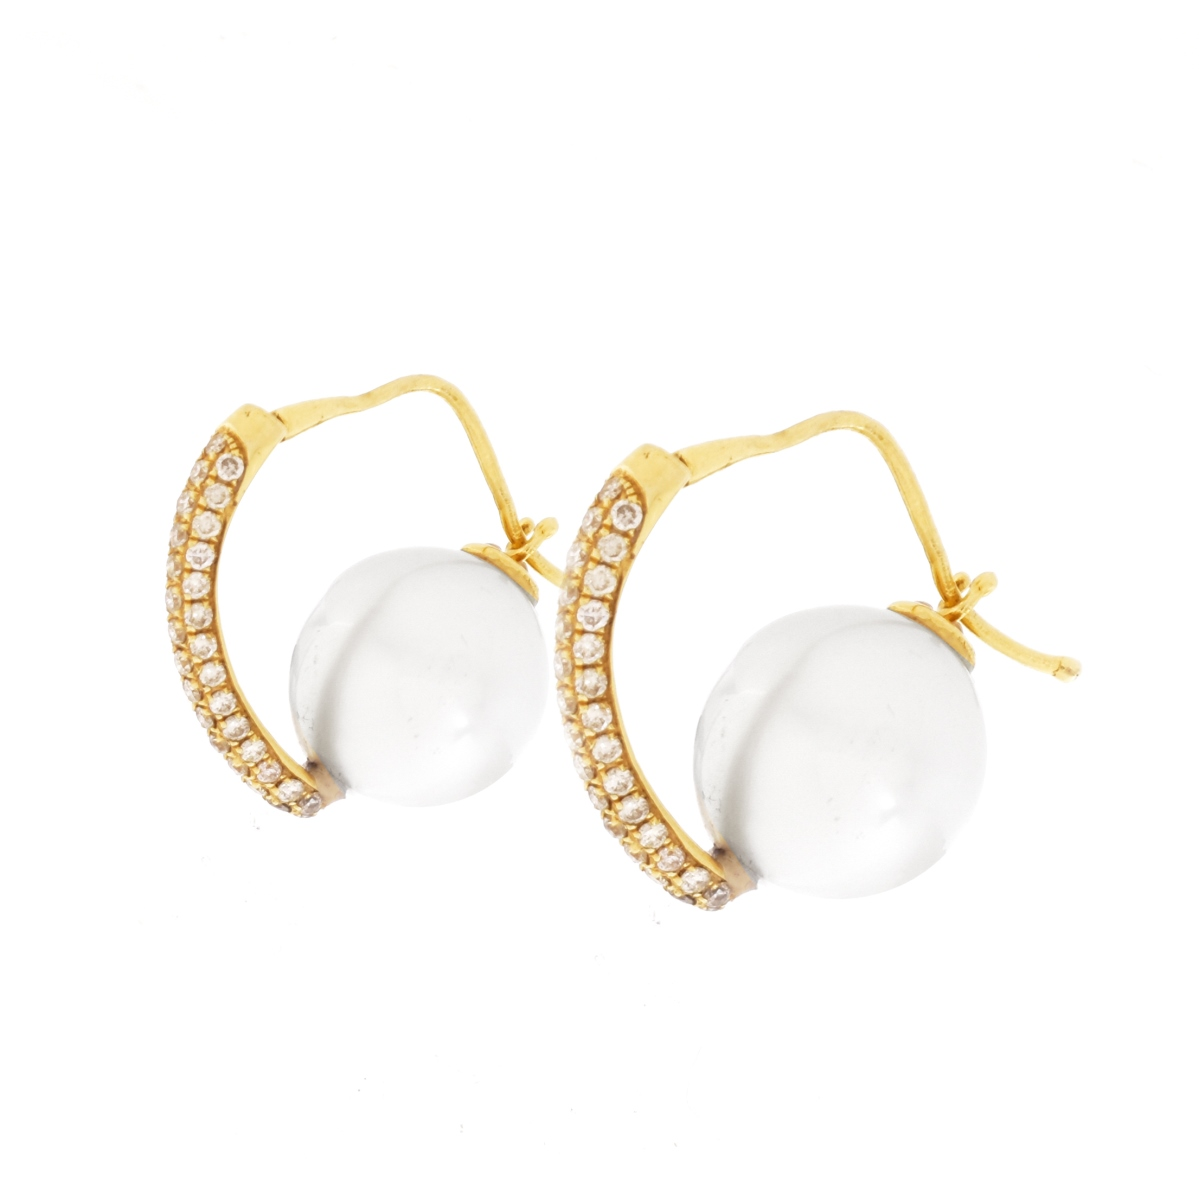 Pearl, Diamond and 14K Earrings